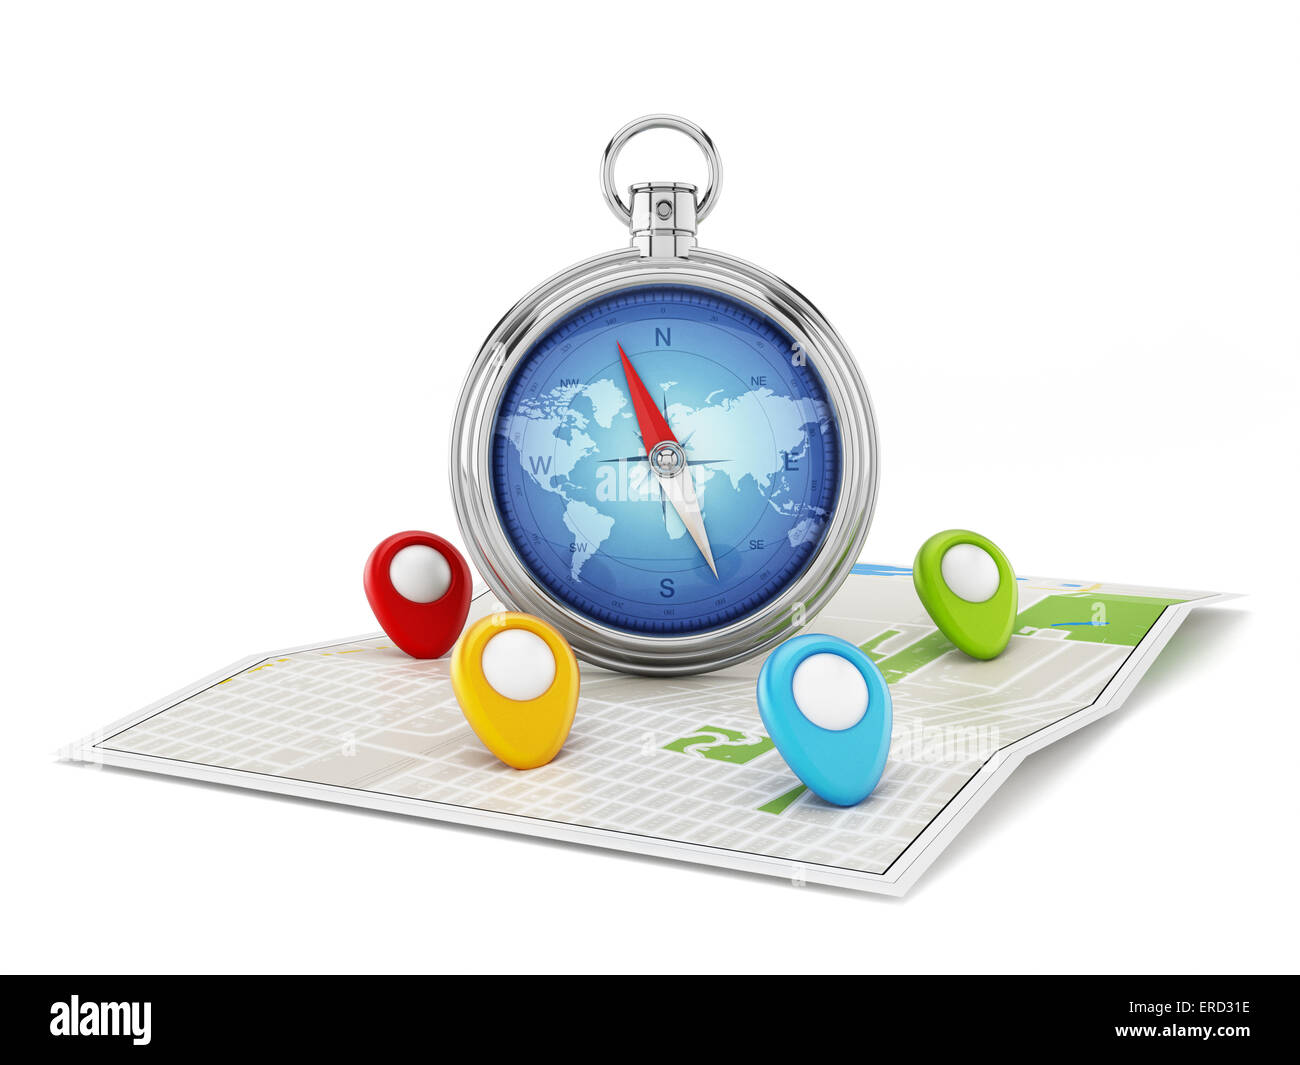 Navigation map with compass and markers isolated - Stock Image